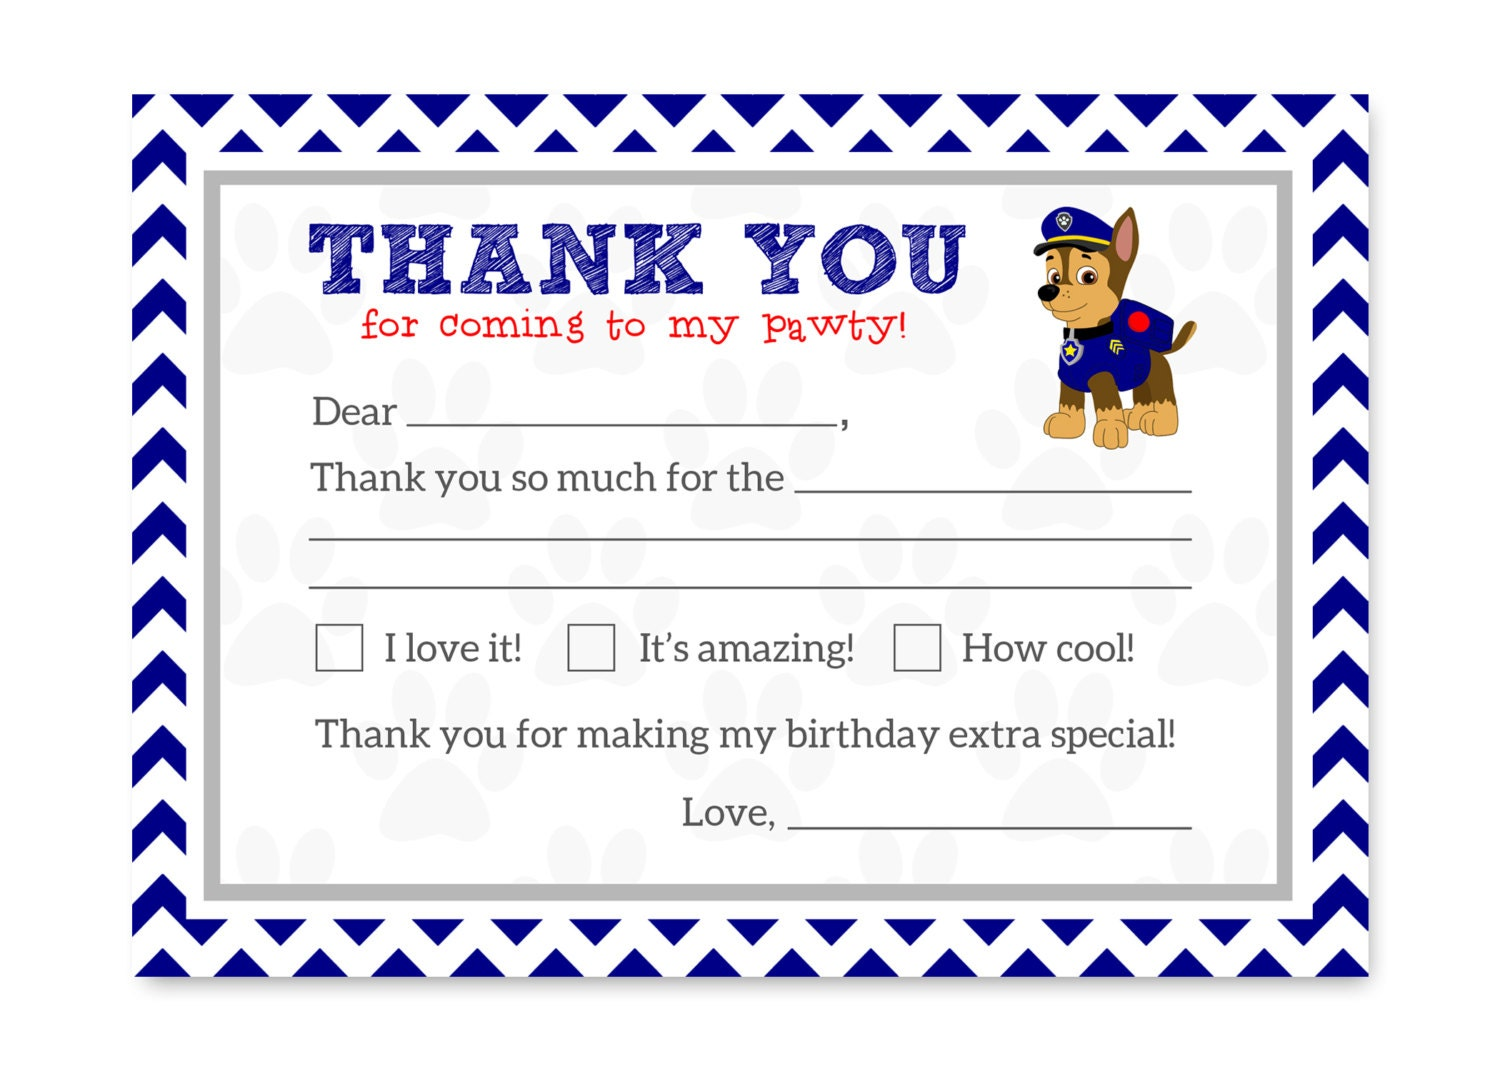 This is a photo of Lucrative Paw Patrol Printable Birthday Card